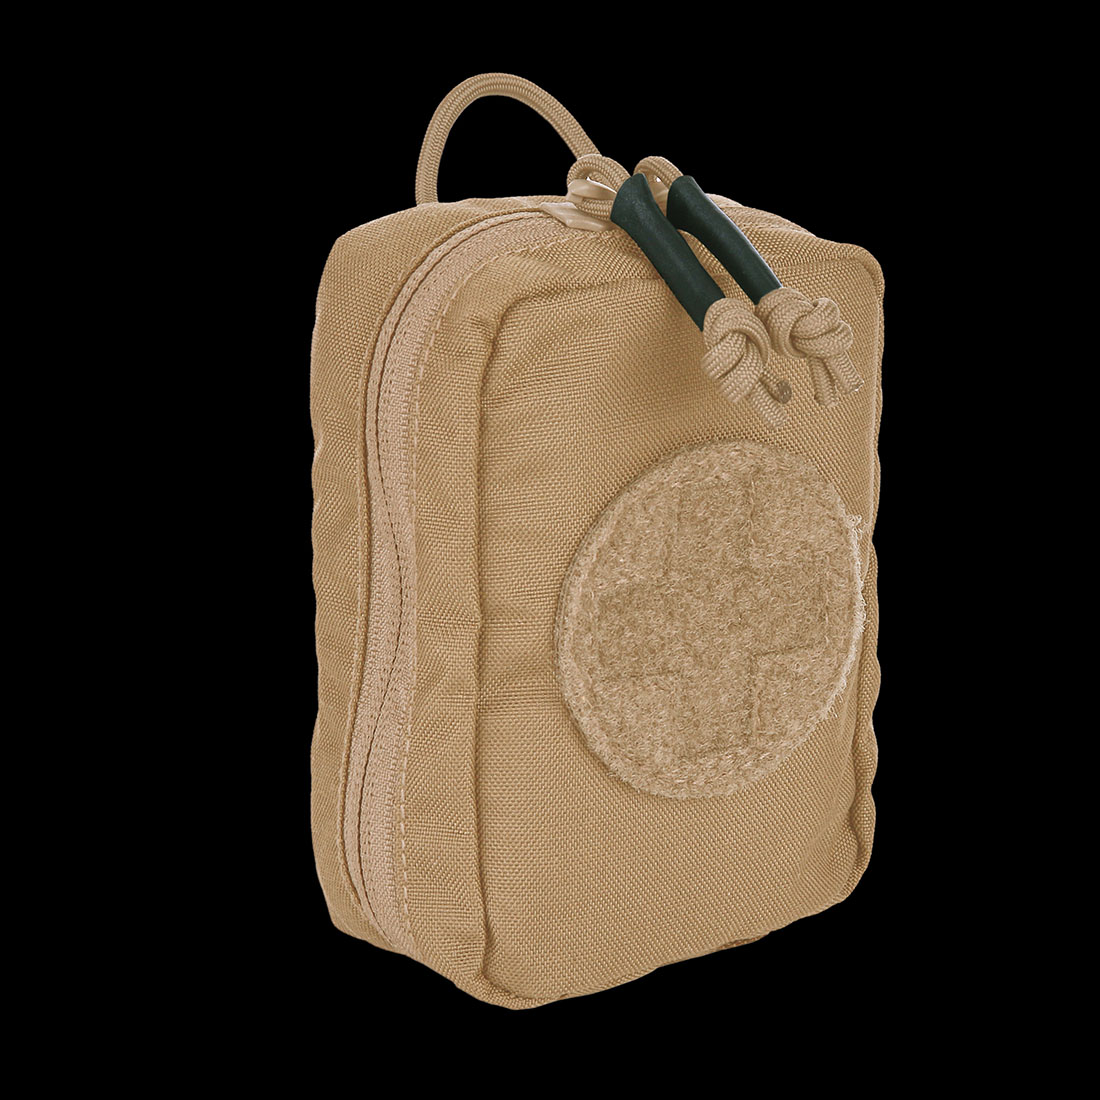 TF-2215 Medic Pouch Small Coyote